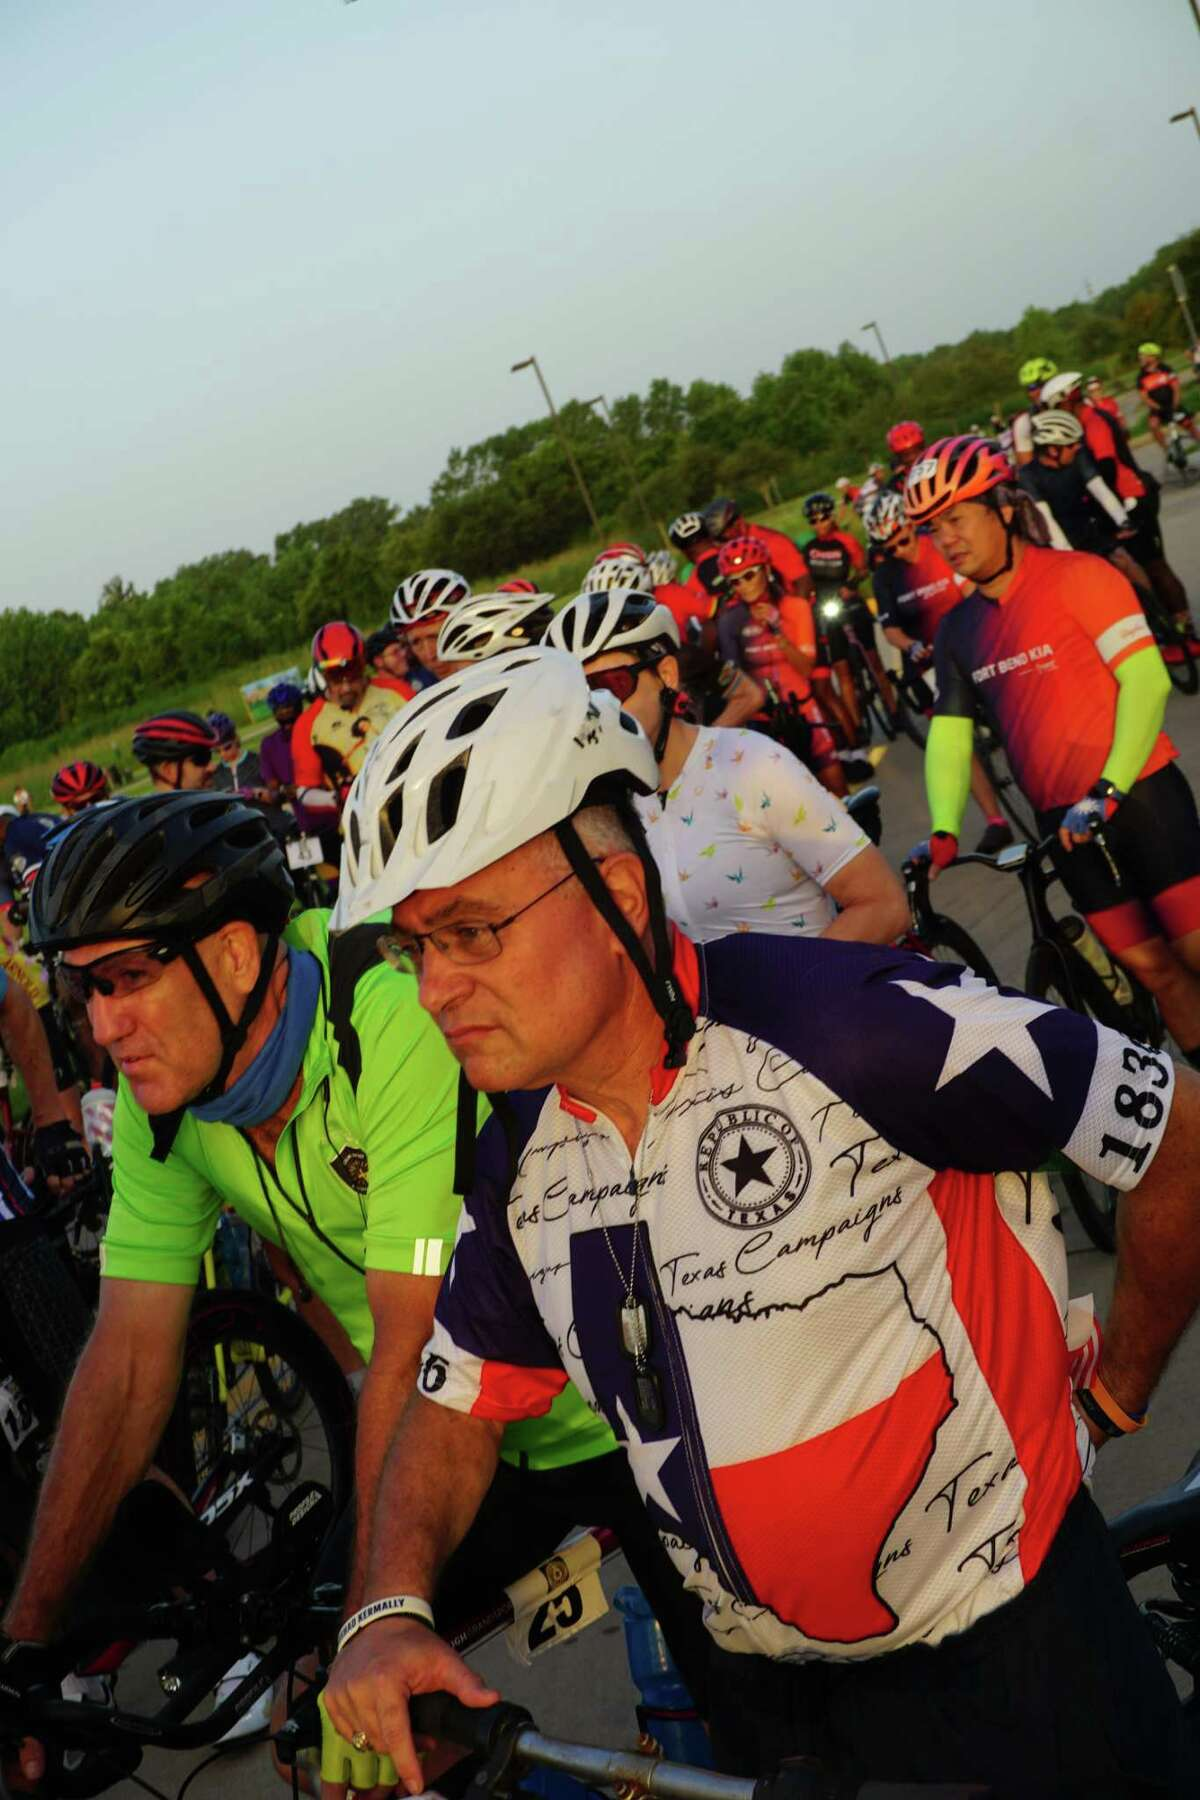 """Cyclists wait for the first """"Bike Ride for Survivors"""" to start on Saturday, Sept. 4, at Brazos River Park in Sugar Land. Fort Bend County District Attorney Brian Middleton started the ride to raise funds for domestic violence survivors."""